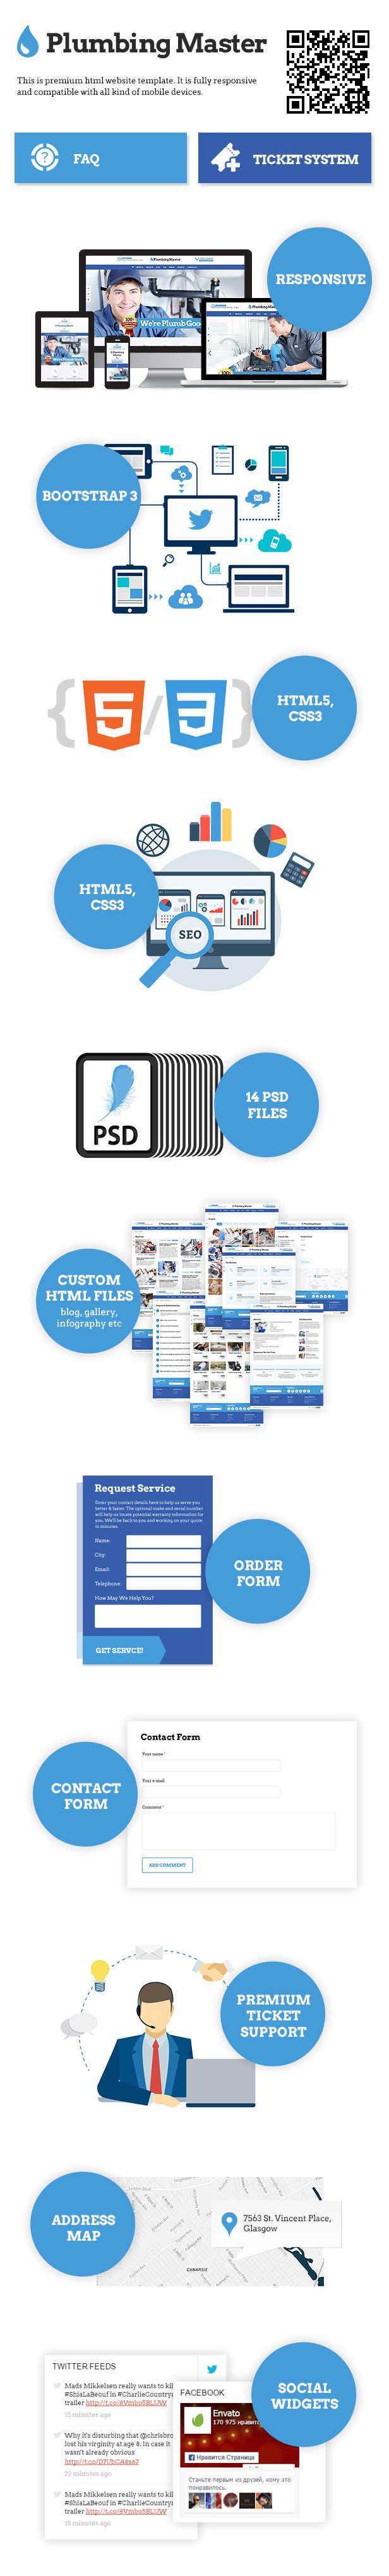 33 best HTML5 templates images on Pinterest | Website template ...